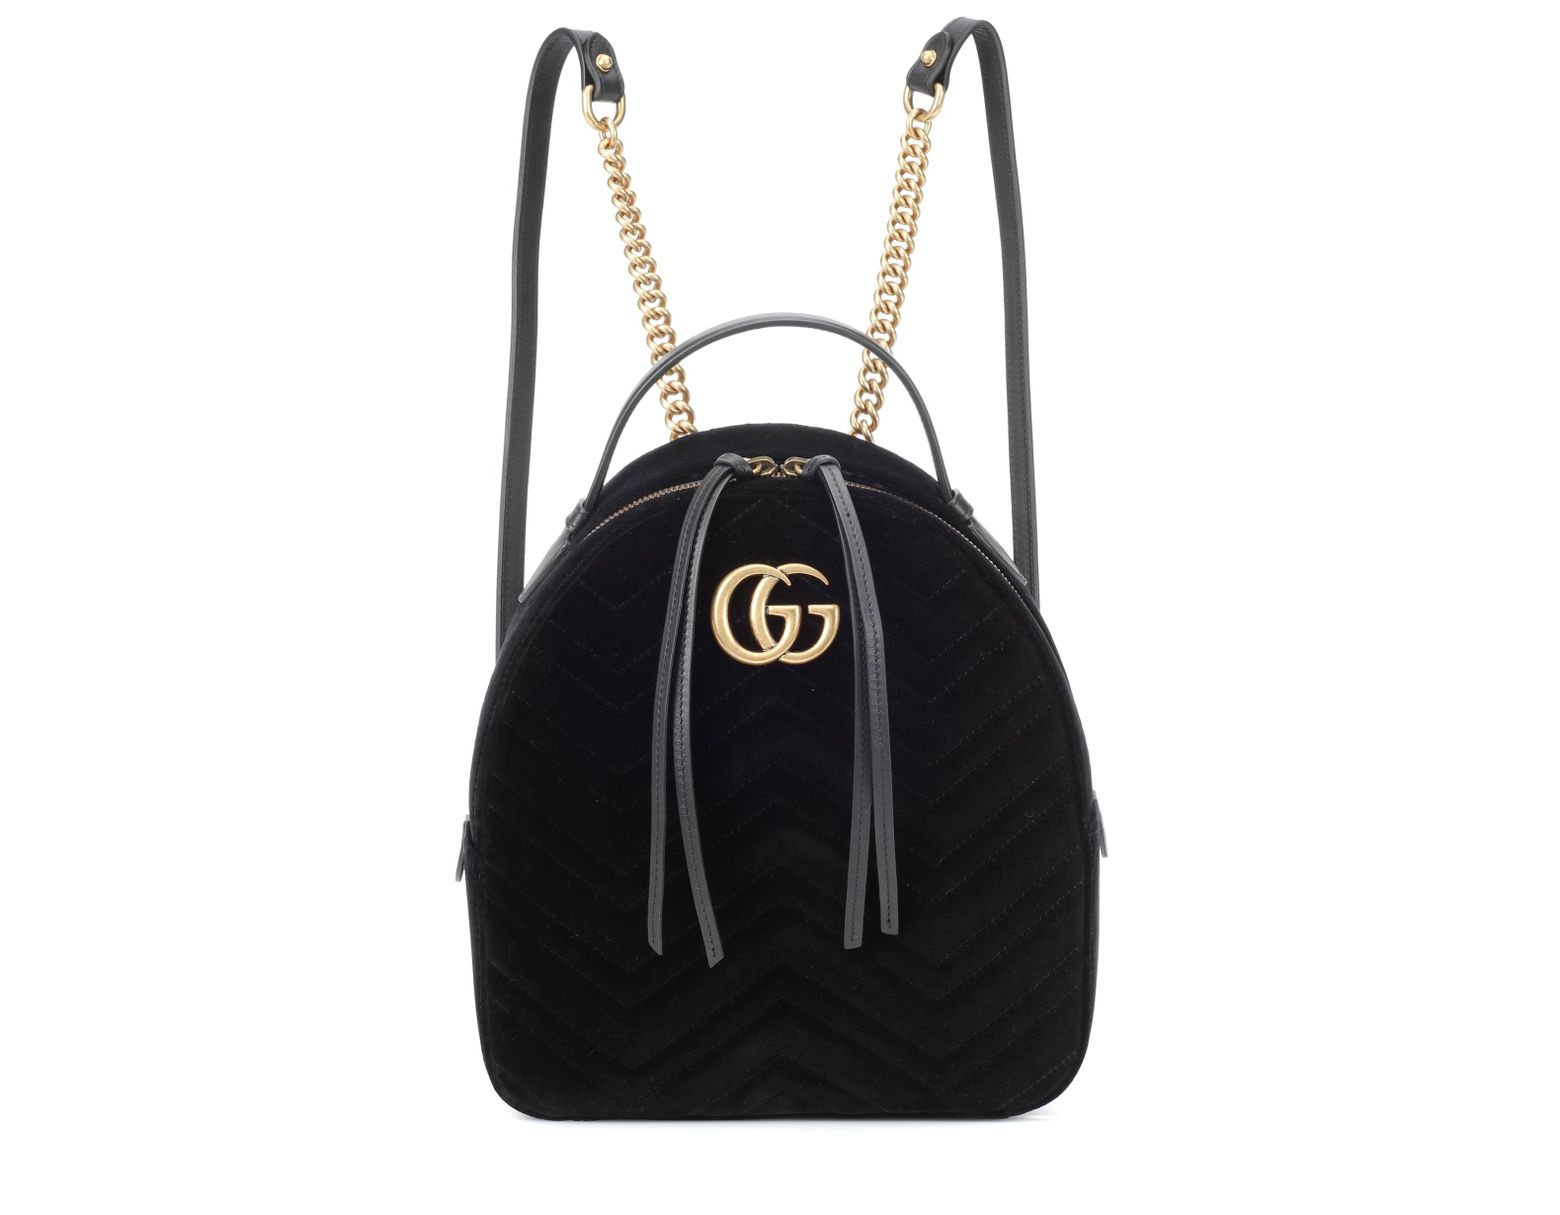 83d8f77c9a0622 Gucci GG Marmont Velvet Backpack in Black - Lyst